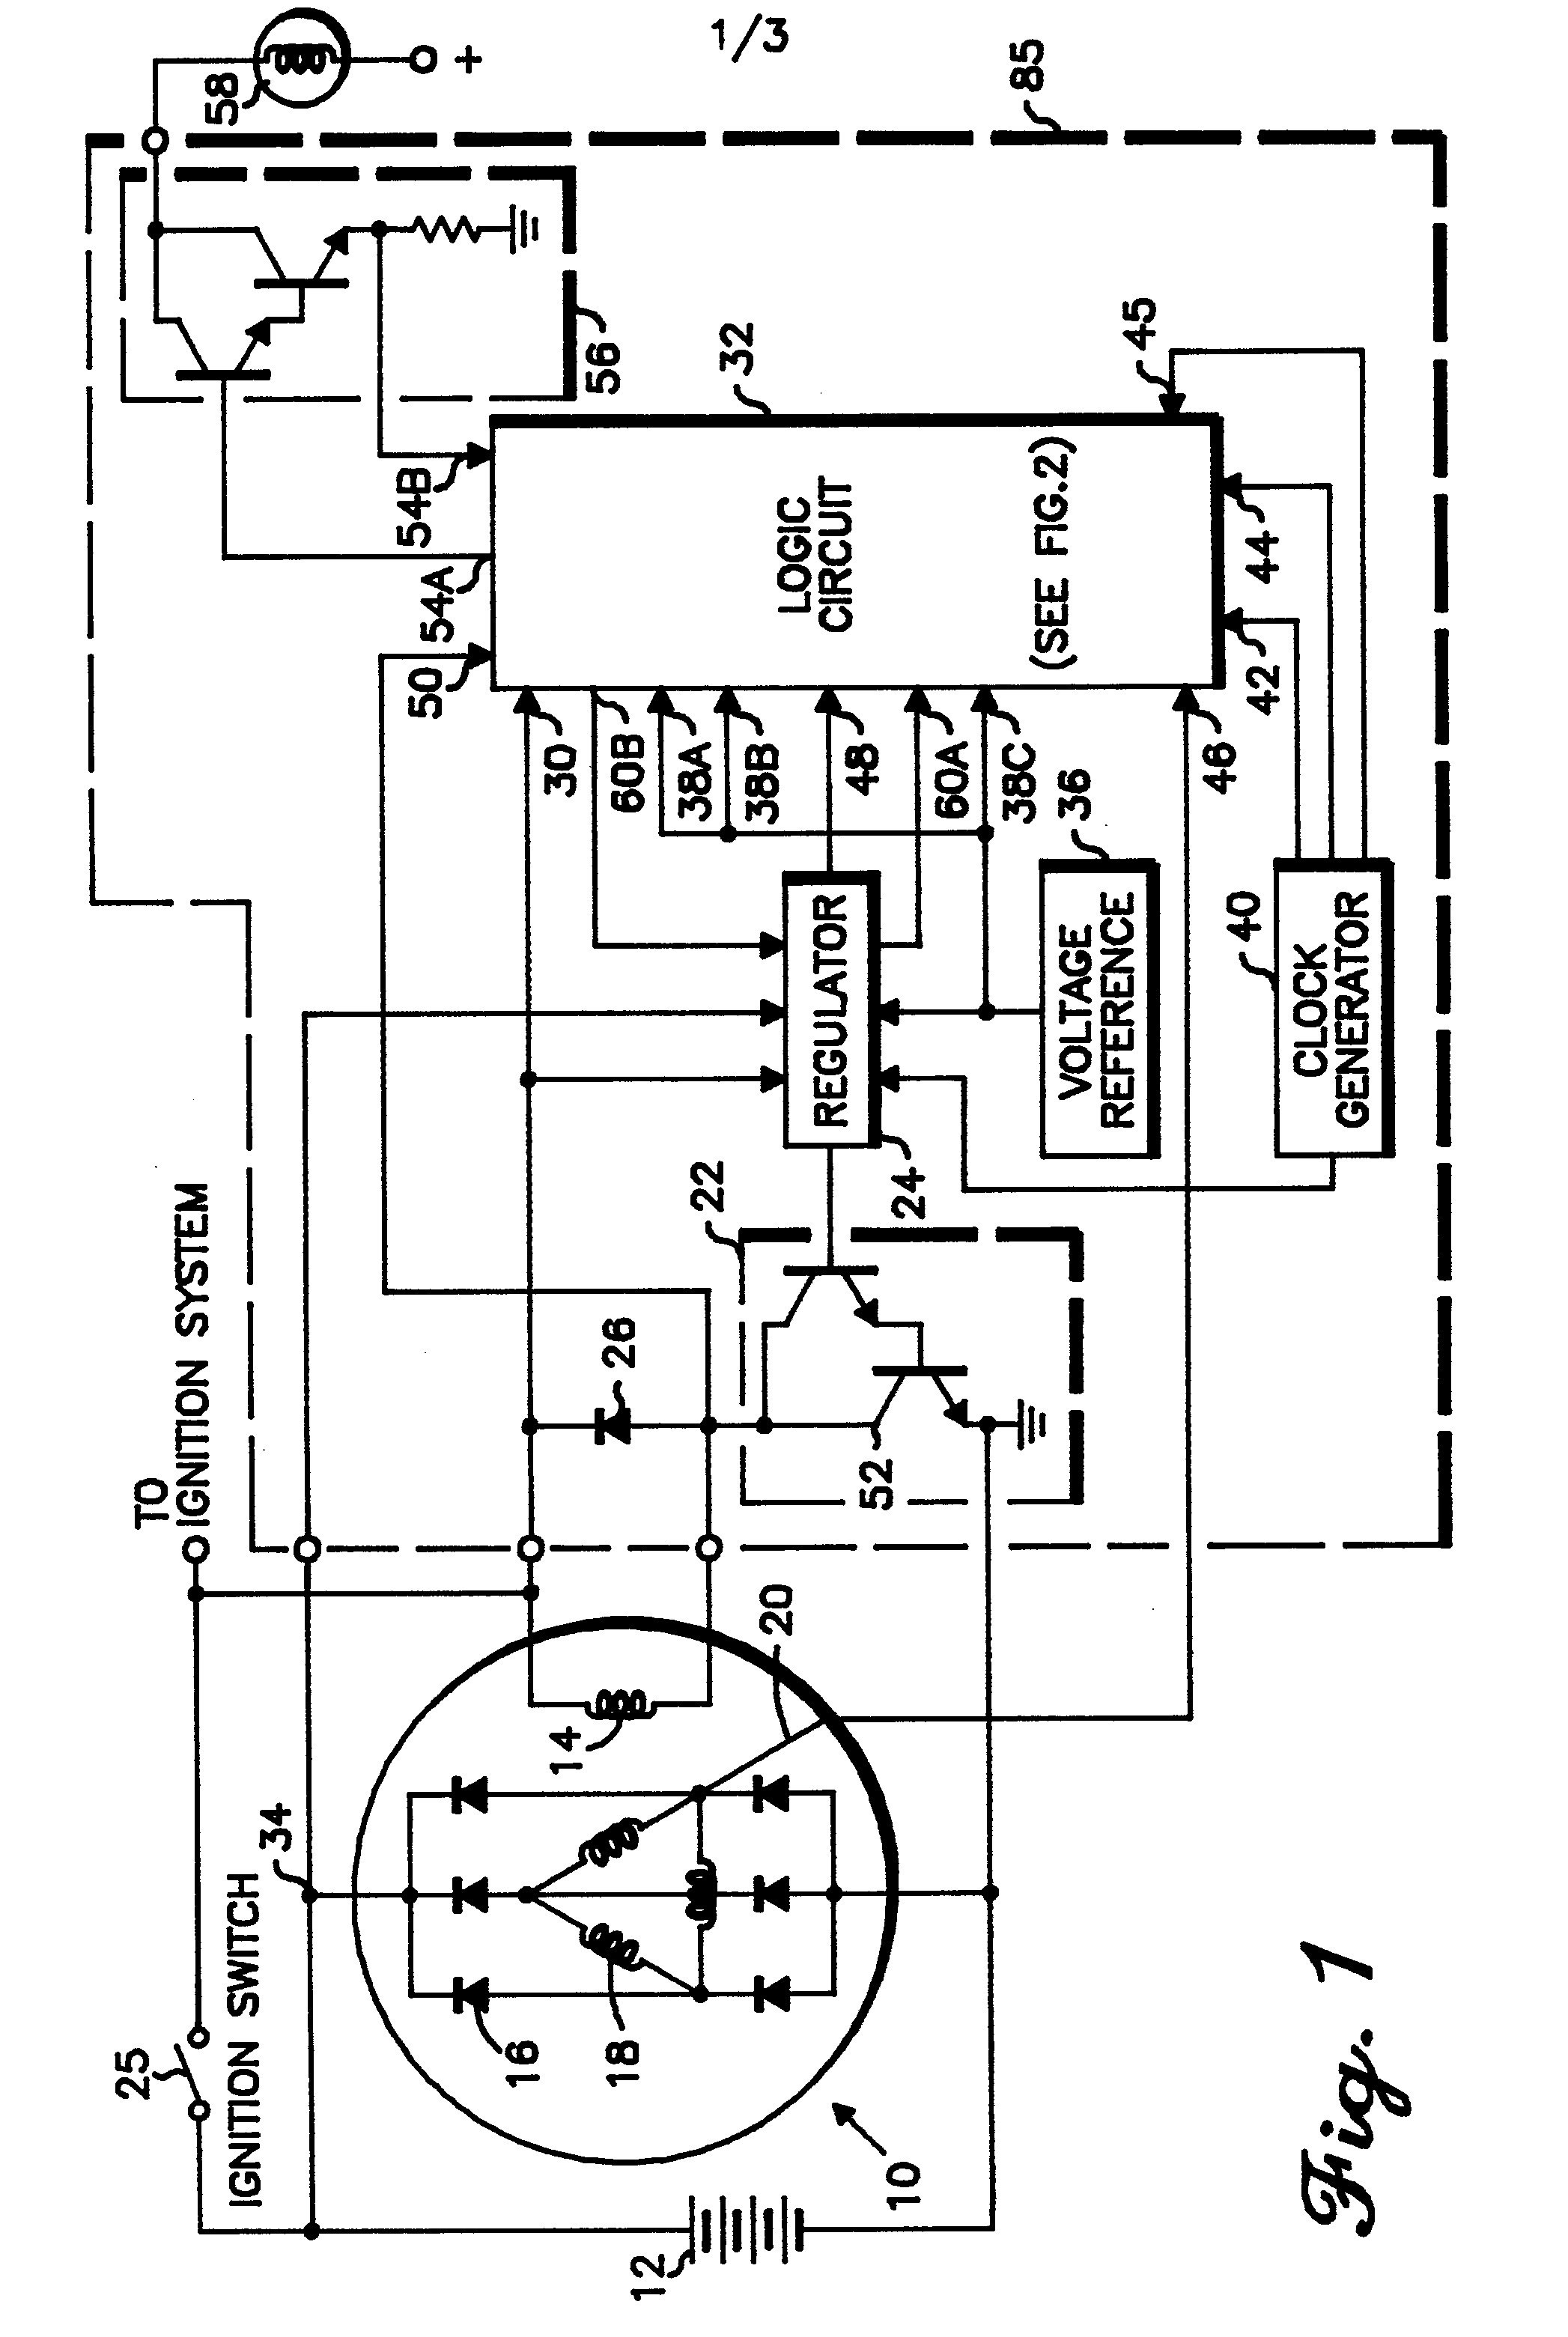 [DIAGRAM] Mitsubishi Alternator Wiring Diagram Pdf FULL